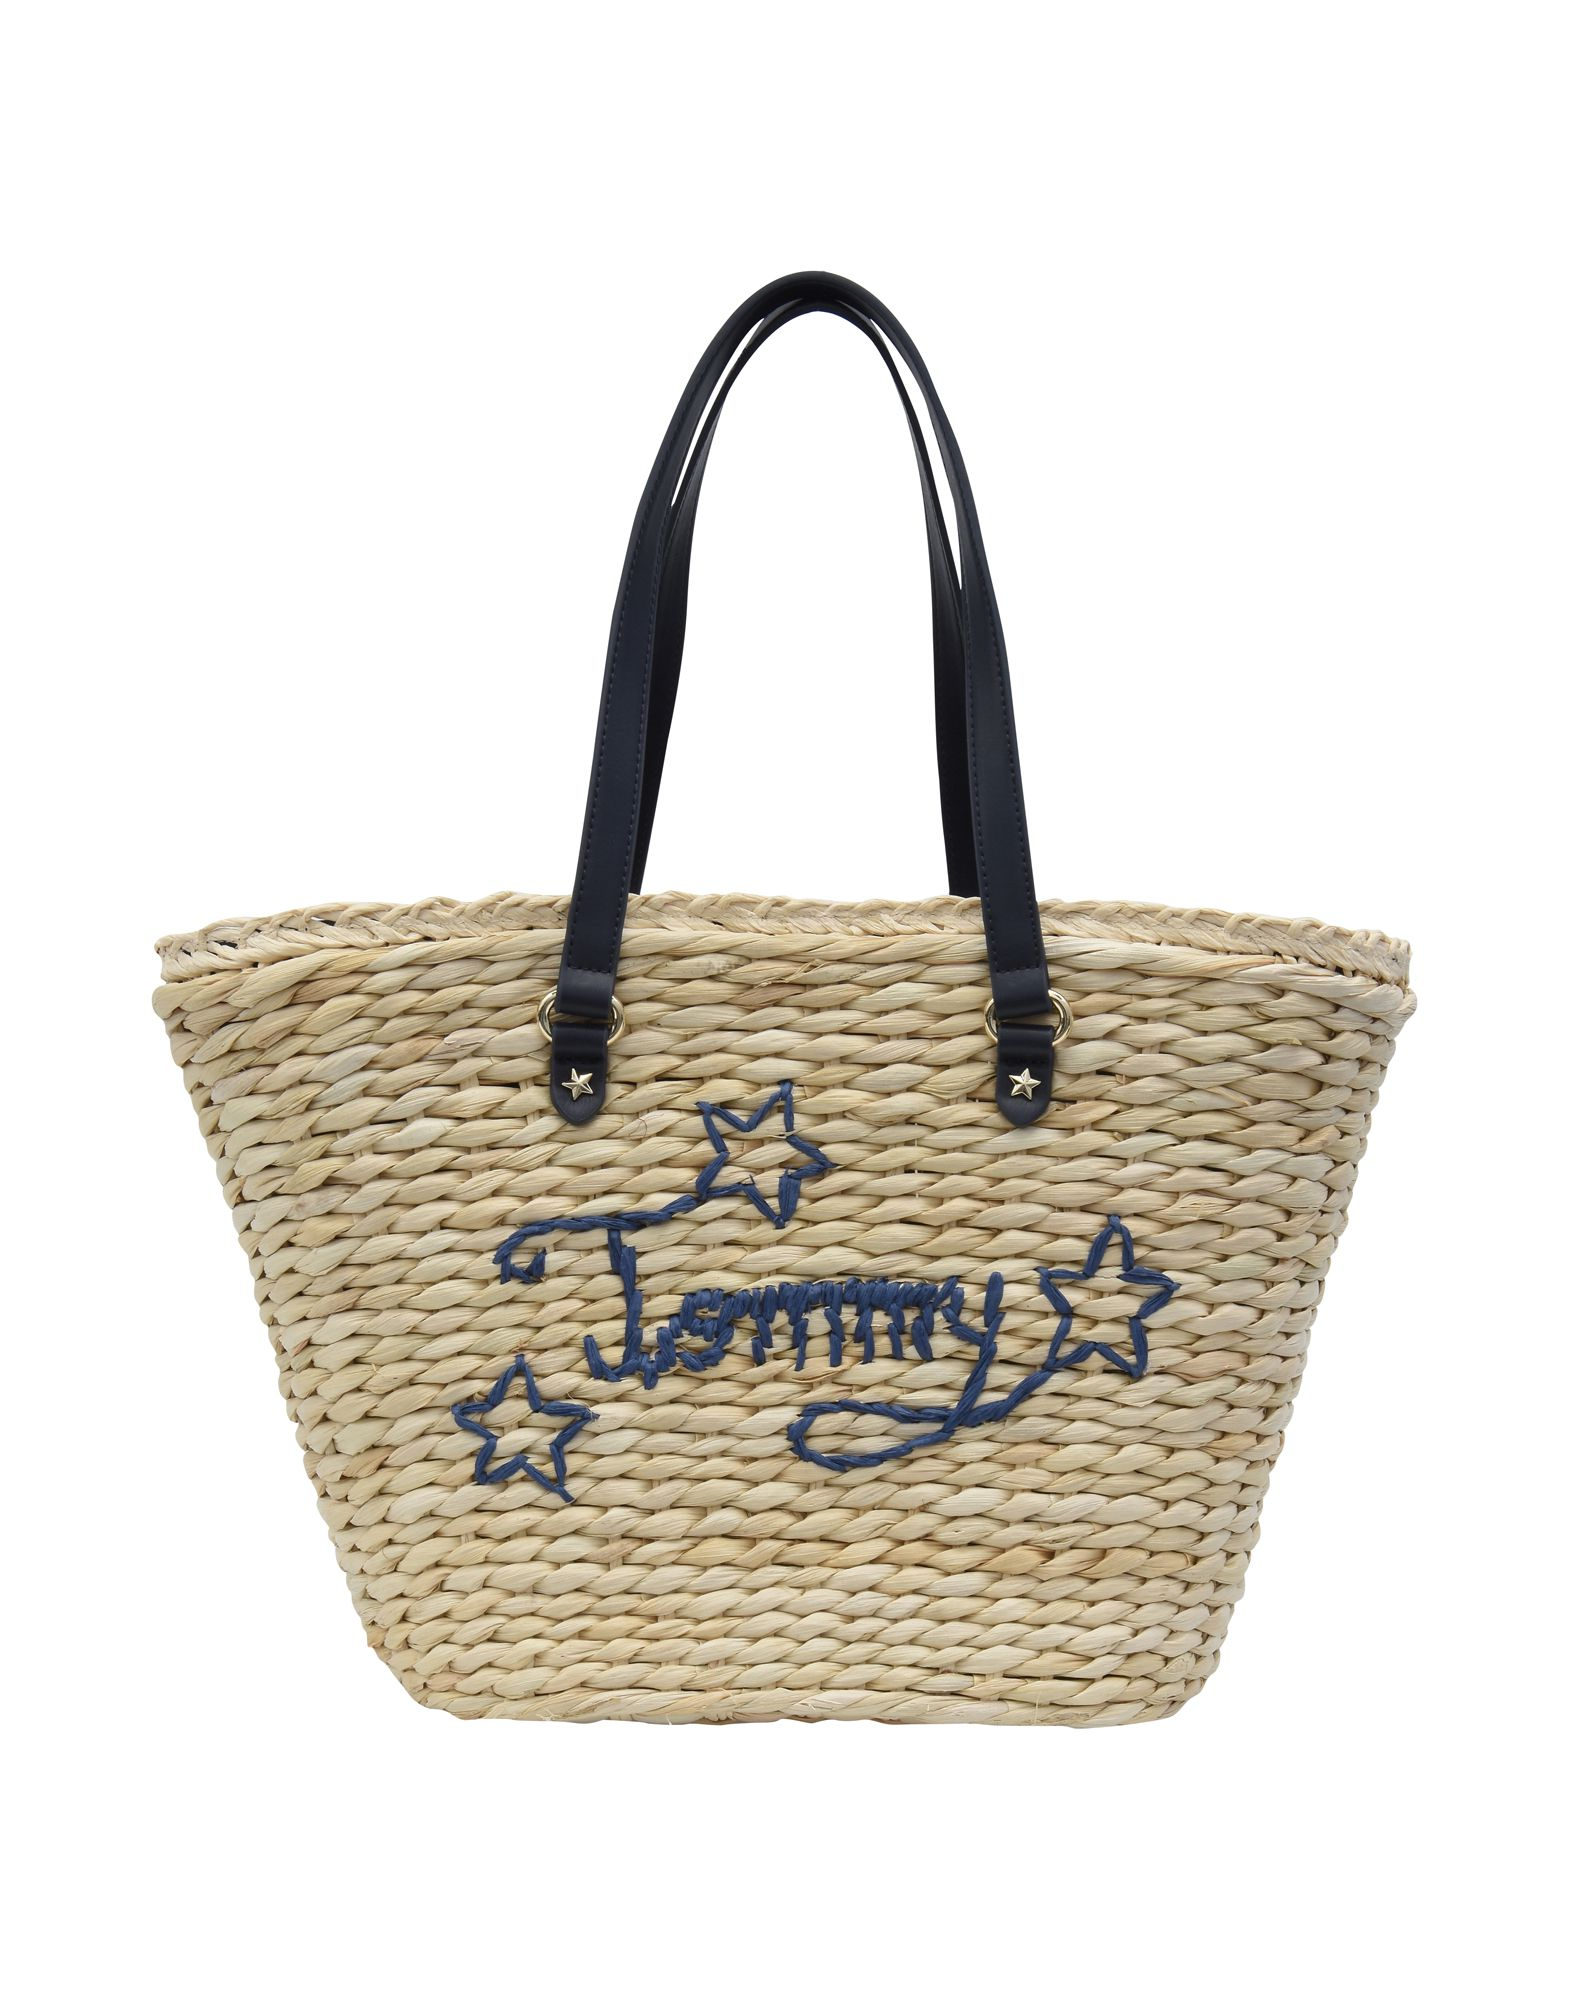 Borsa A Mano Tommy Hilfiger Th Straw Tote - Donna - Acquista online su